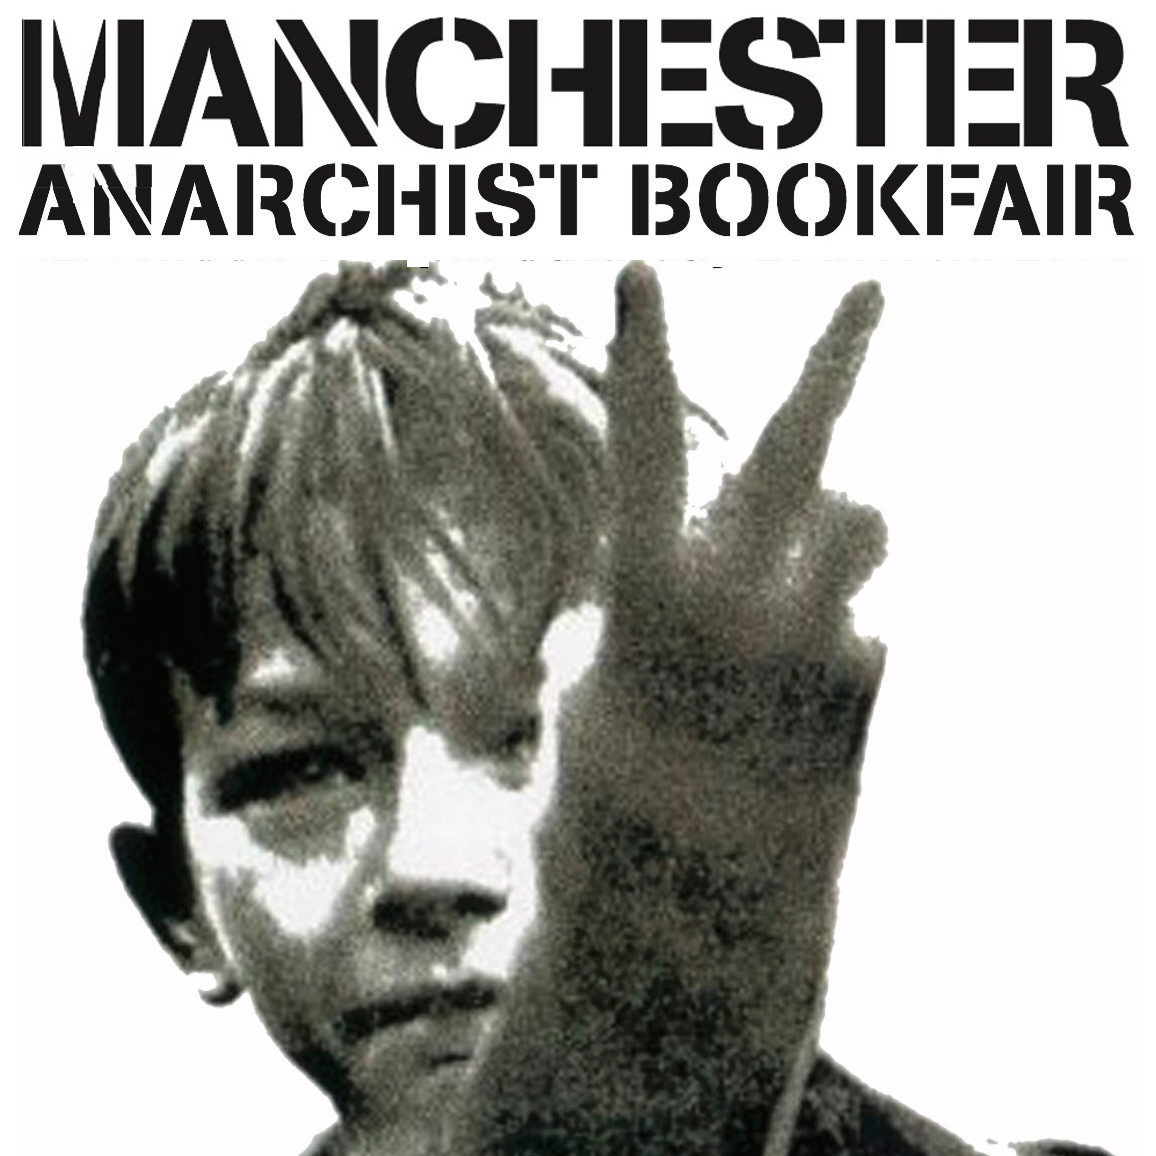 Manchester Anarchist Bookfair symbol